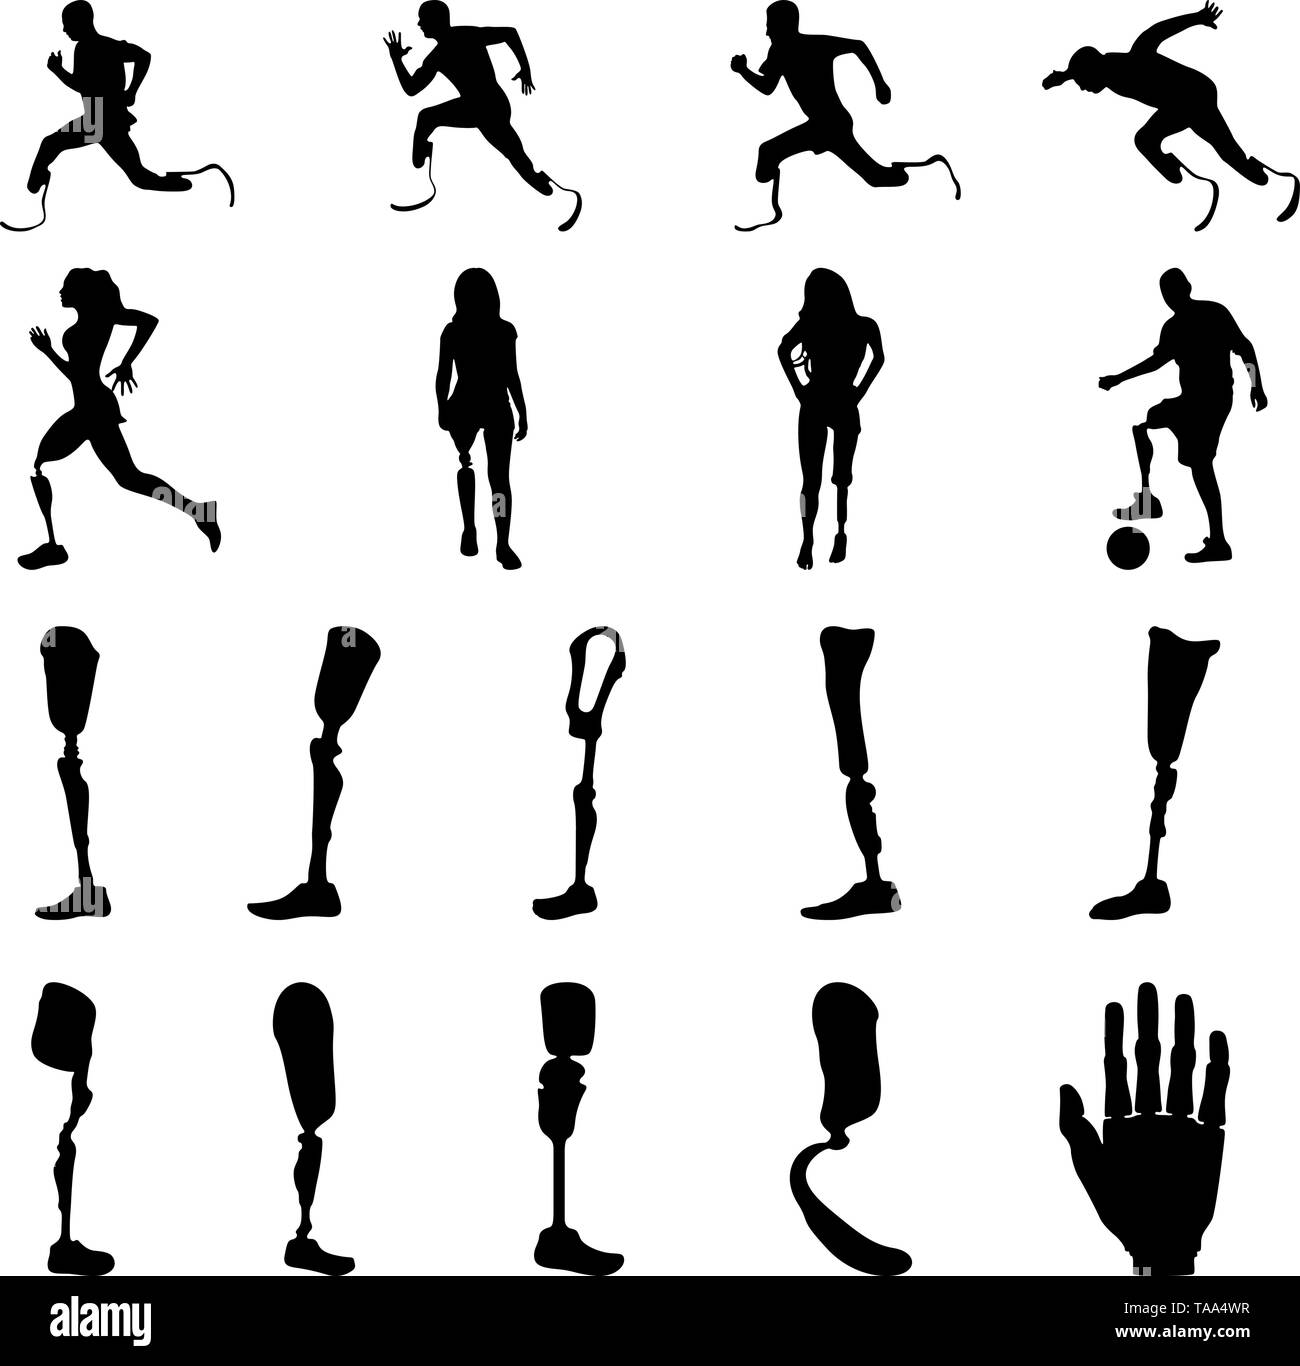 Silhouettes of amputee people with artificial limb. Silhouettes of prosthetic legs and arms. - Stock Image